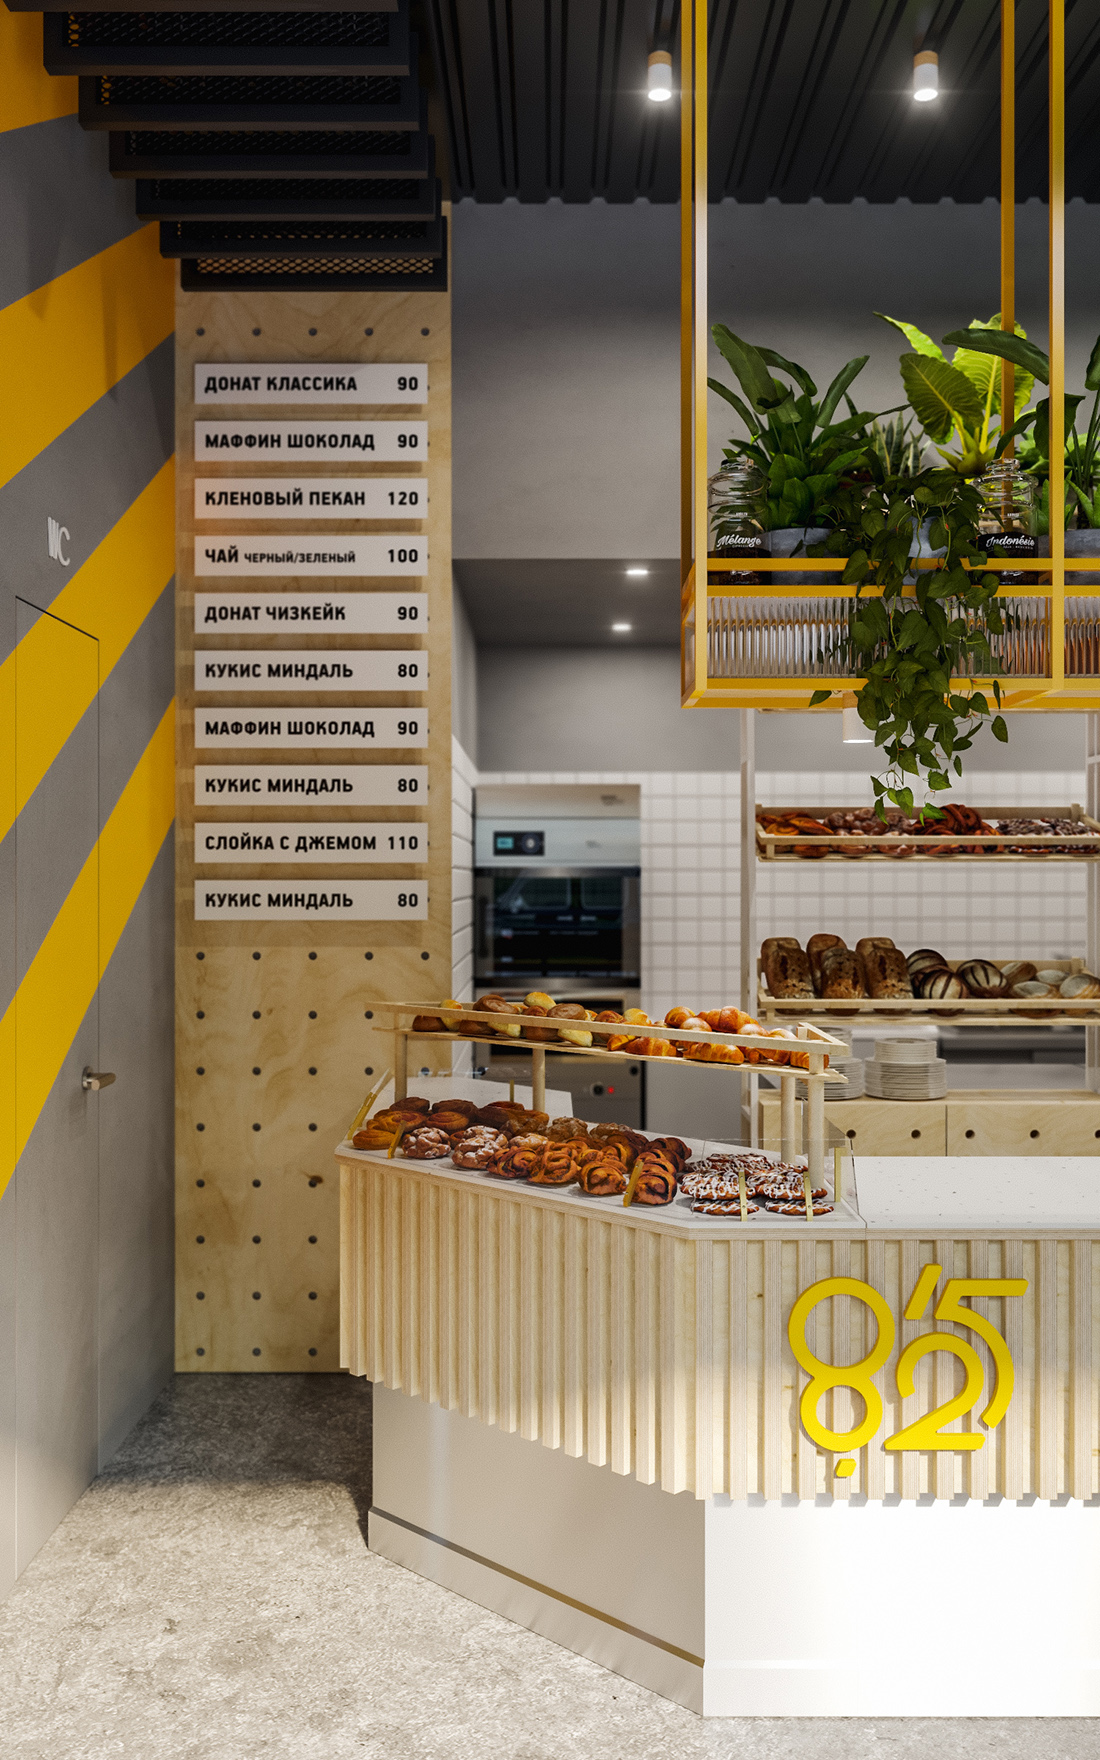 8/25 bakery interior | Moscow